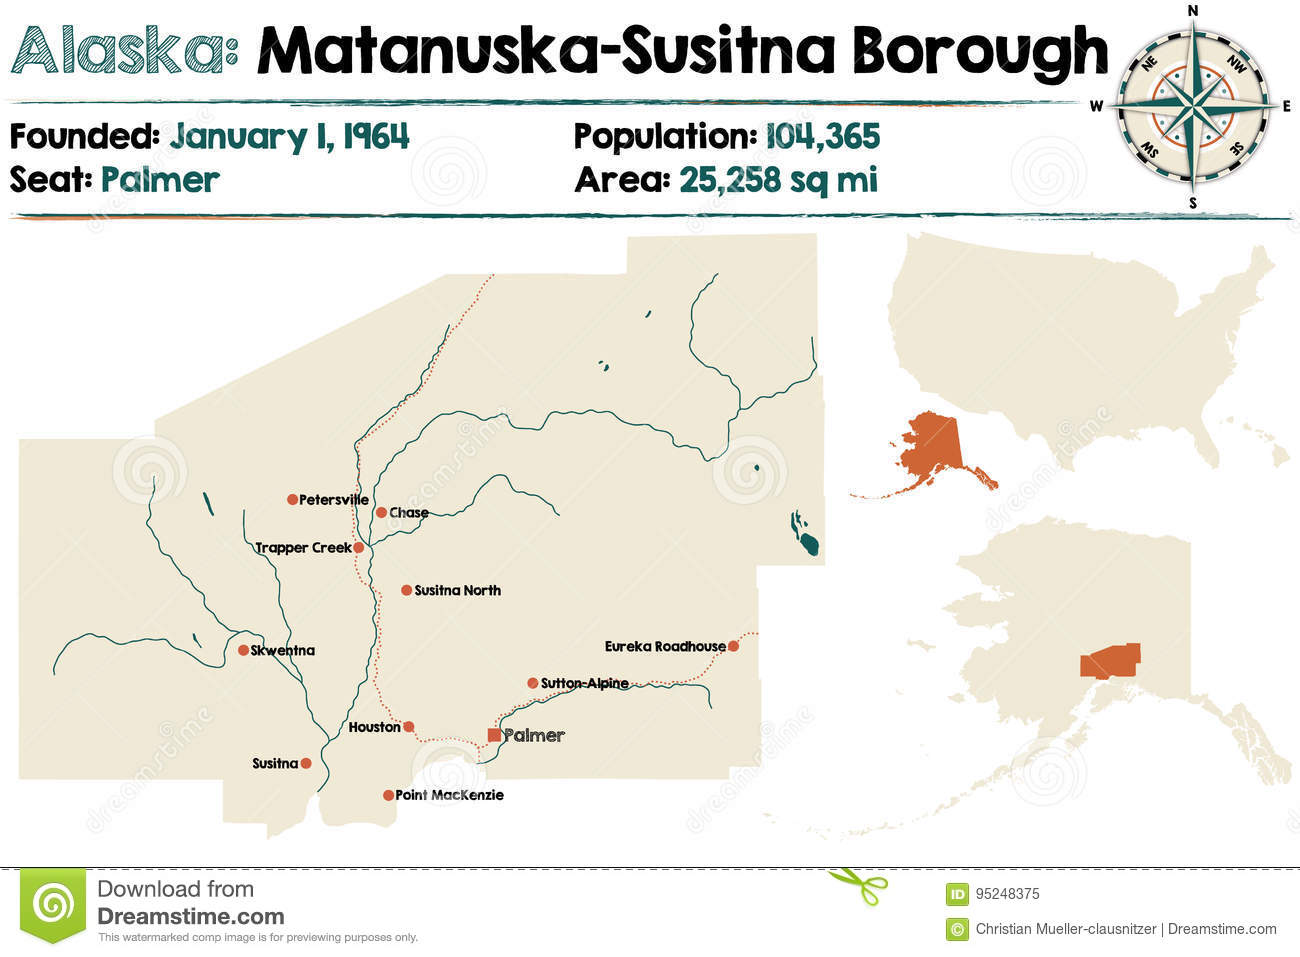 matanuska susitna county hindu singles Search all matanuska susitna county, ak foreclosures for an amazing deal on your next home view the most up-to-date list of foreclosed homes in matanuska susitna county on foreclosurefreesearchcom.